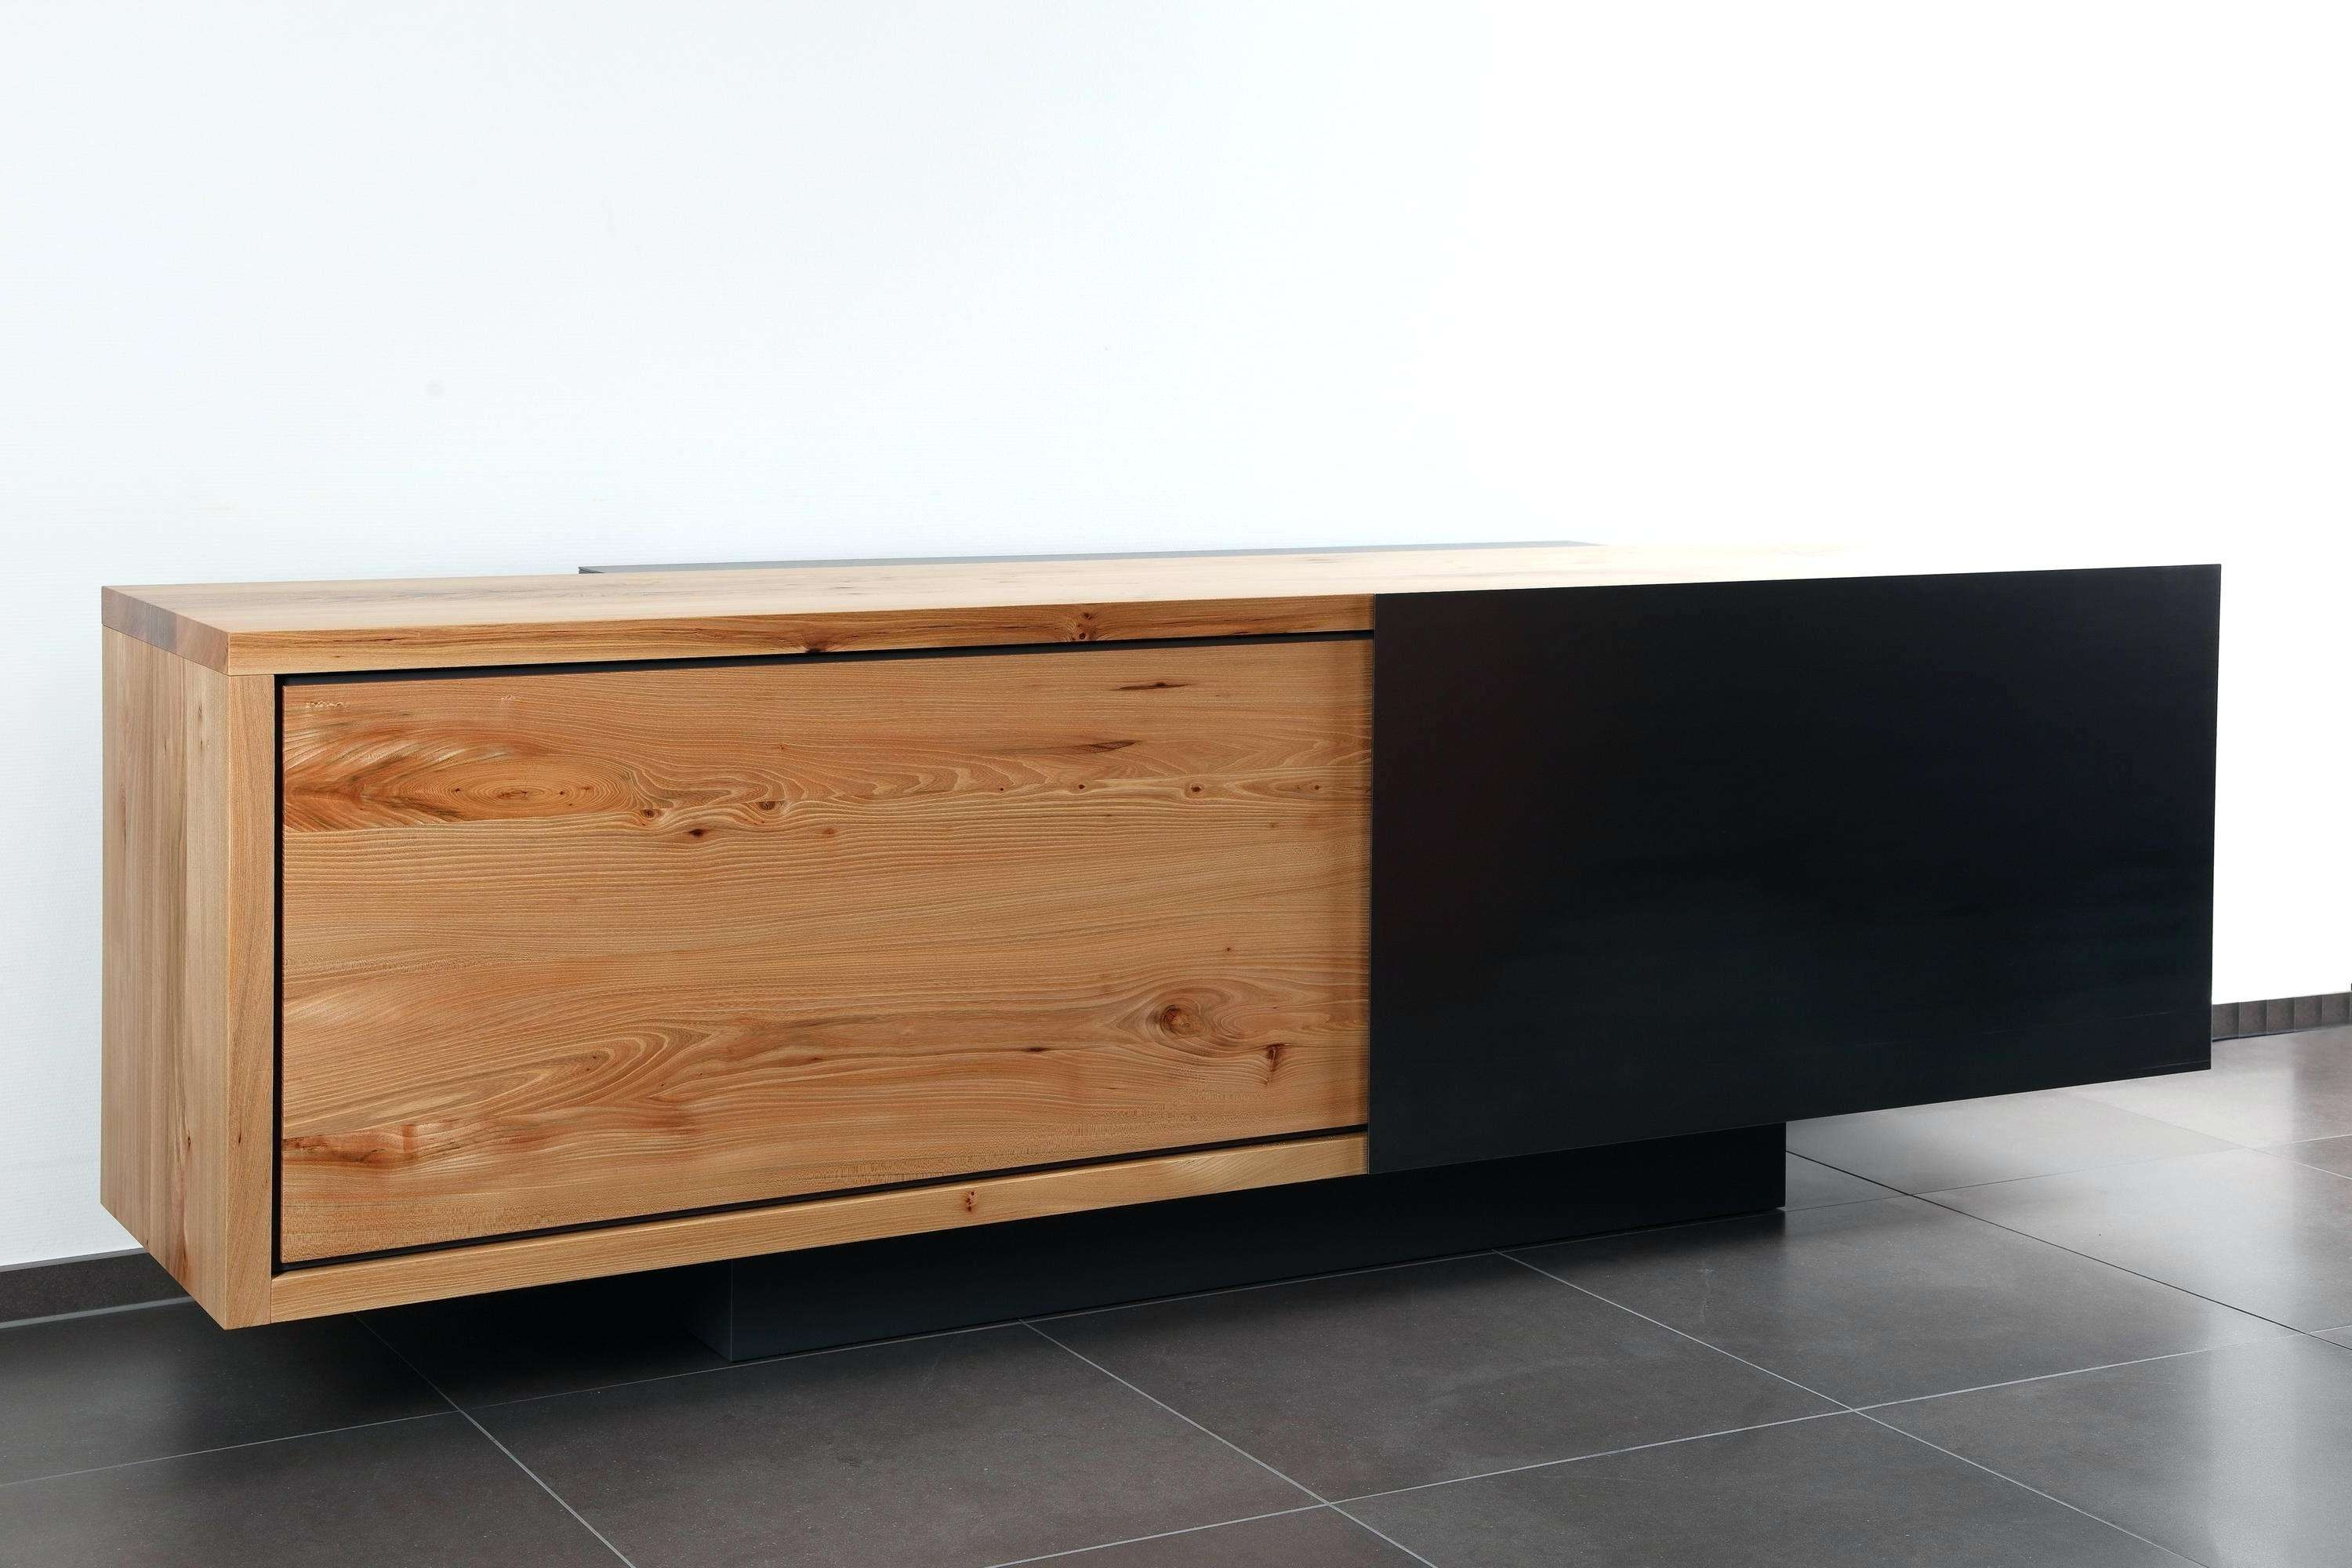 Tv Sideboard Gumtree Large Sideboards Modern – Looneysusedcars Throughout Tv Sideboards (View 16 of 20)